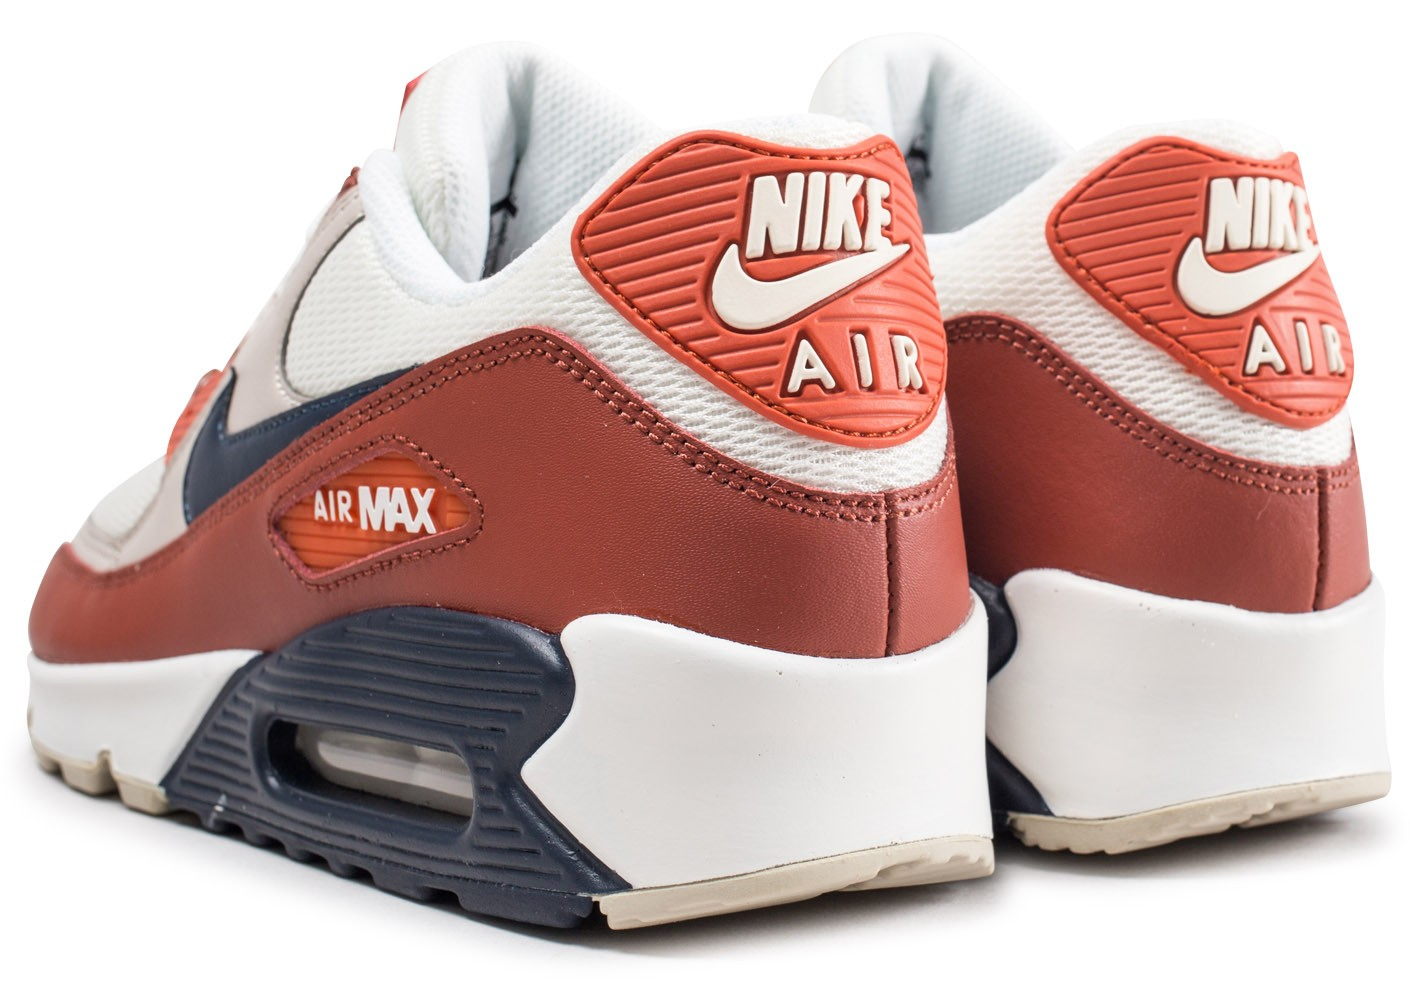 sale retailer f7533 26121 Nike Air Max 90 Essential Mars Stone - Chaussures Baskets ...